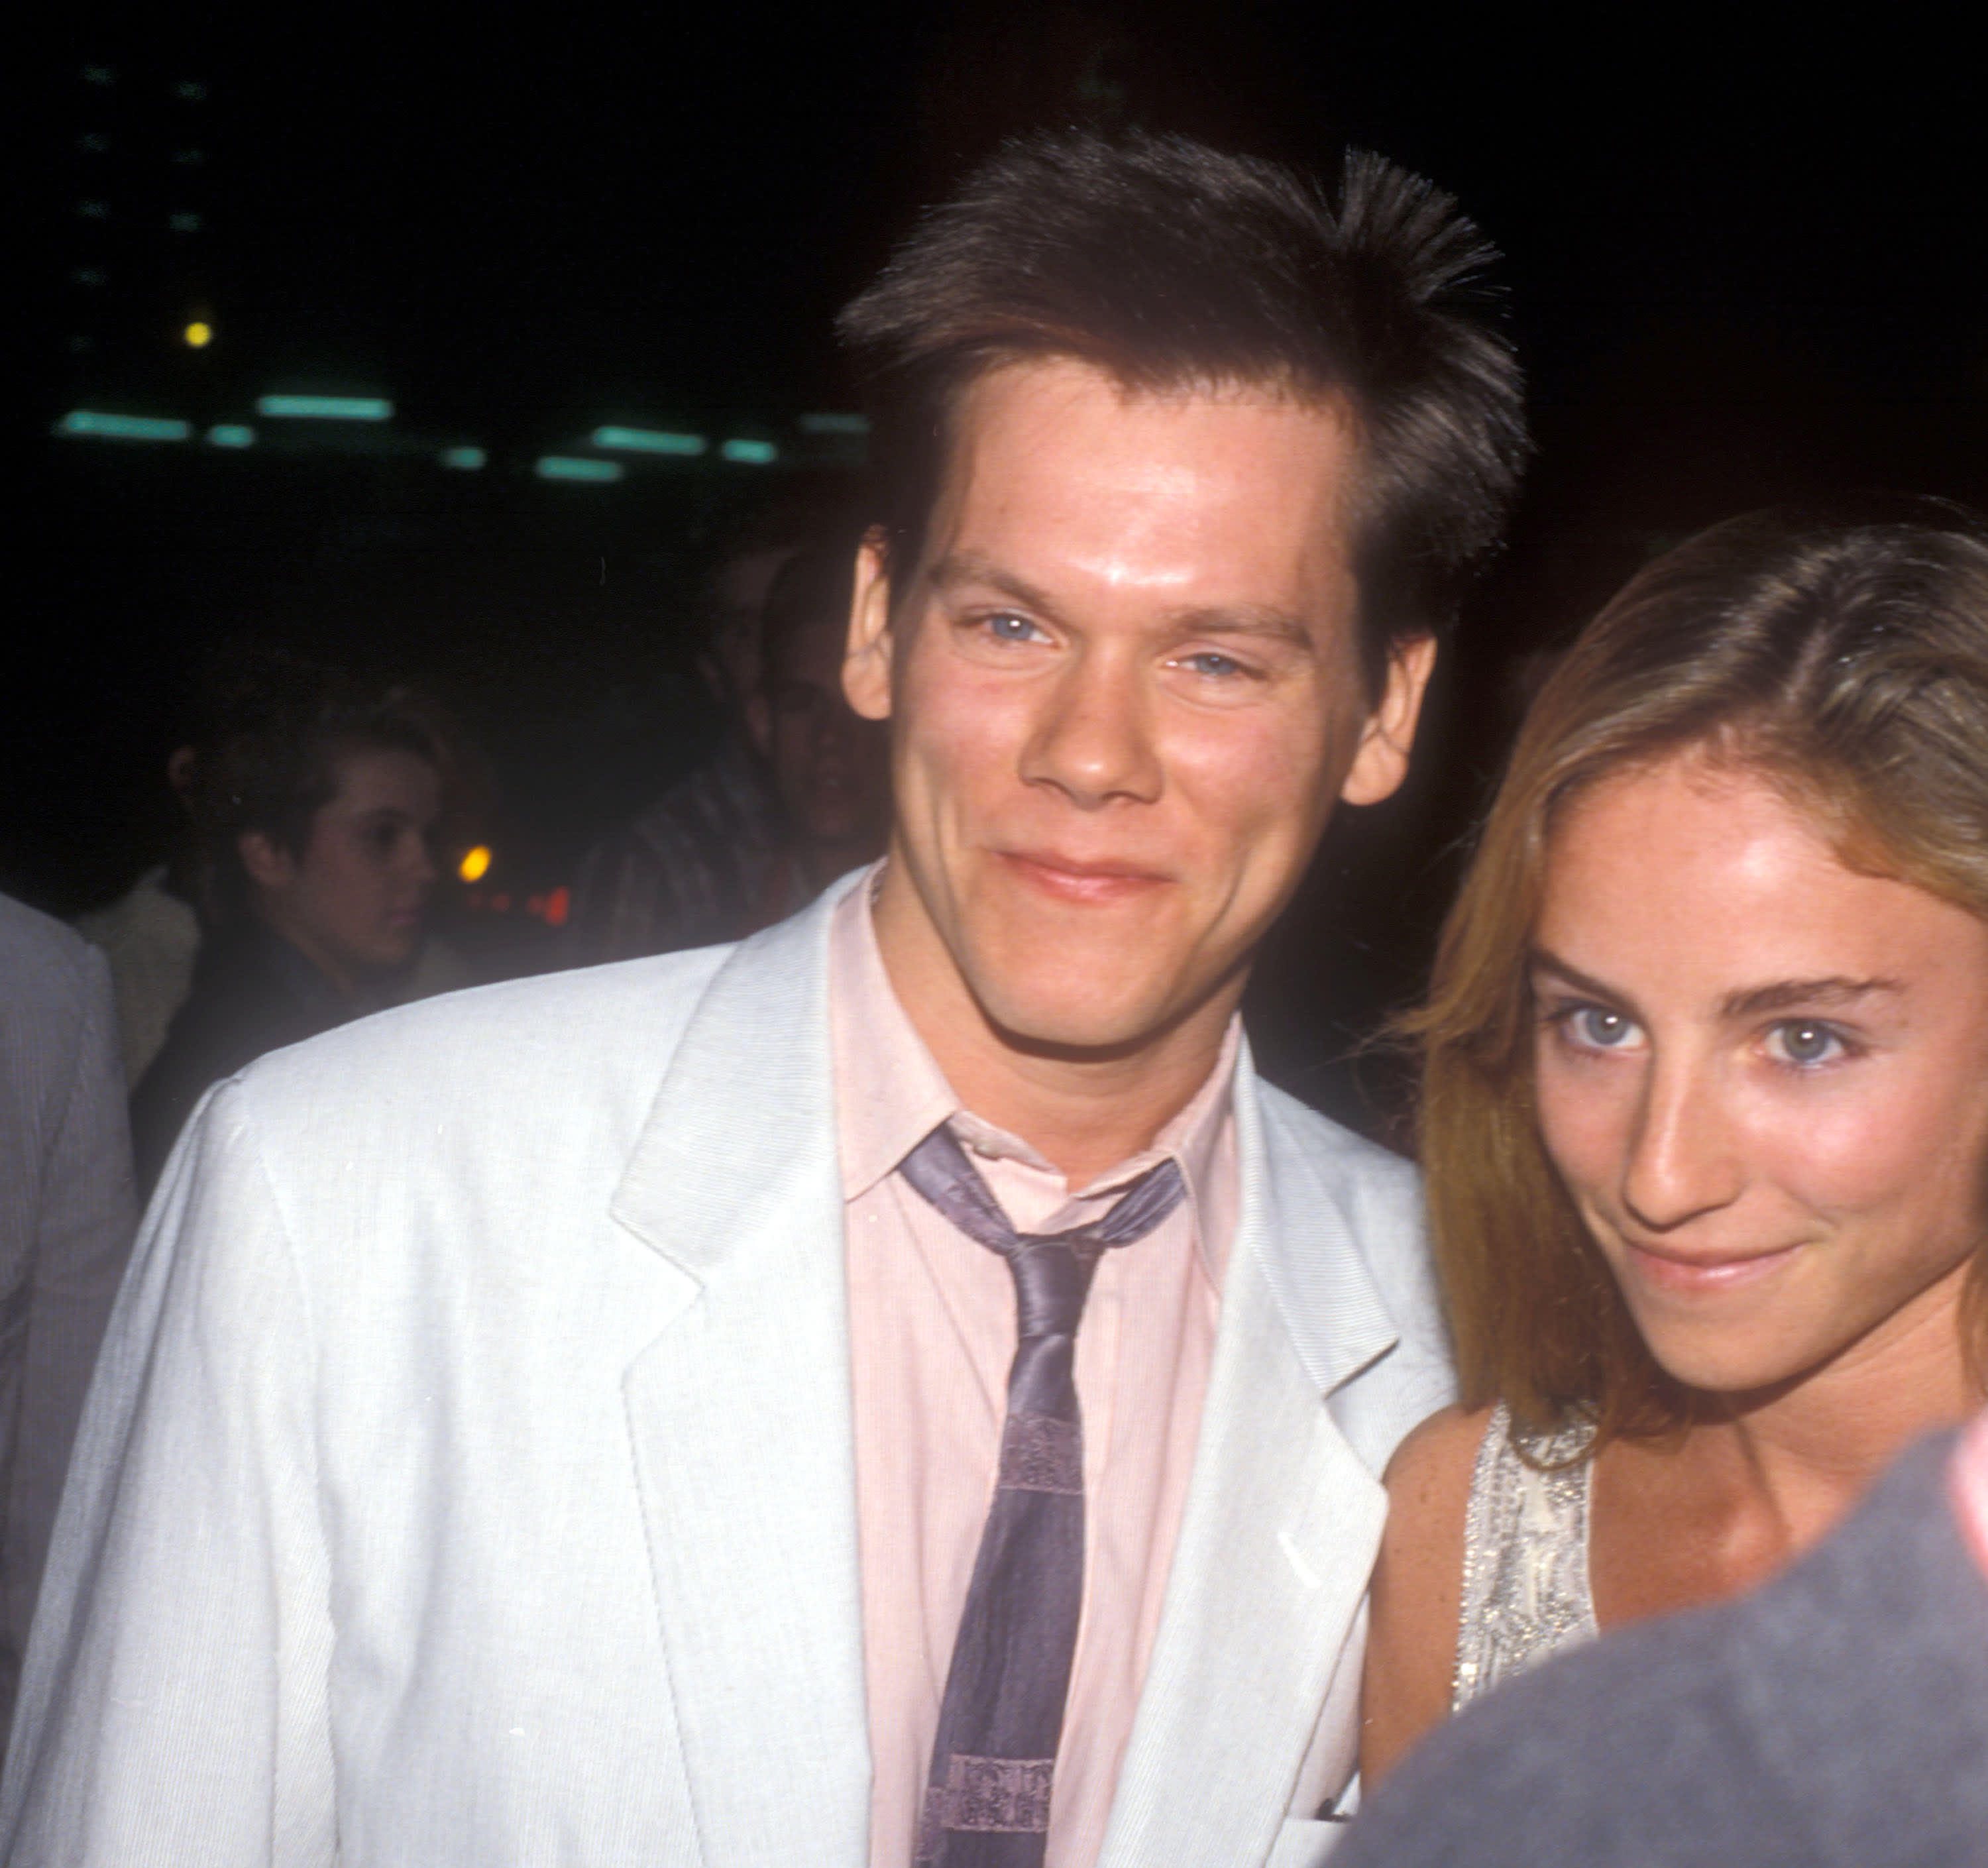 Kevin Bacon went from bussing tables to making 'more money than I ever imagined'—but blew his first big paycheck